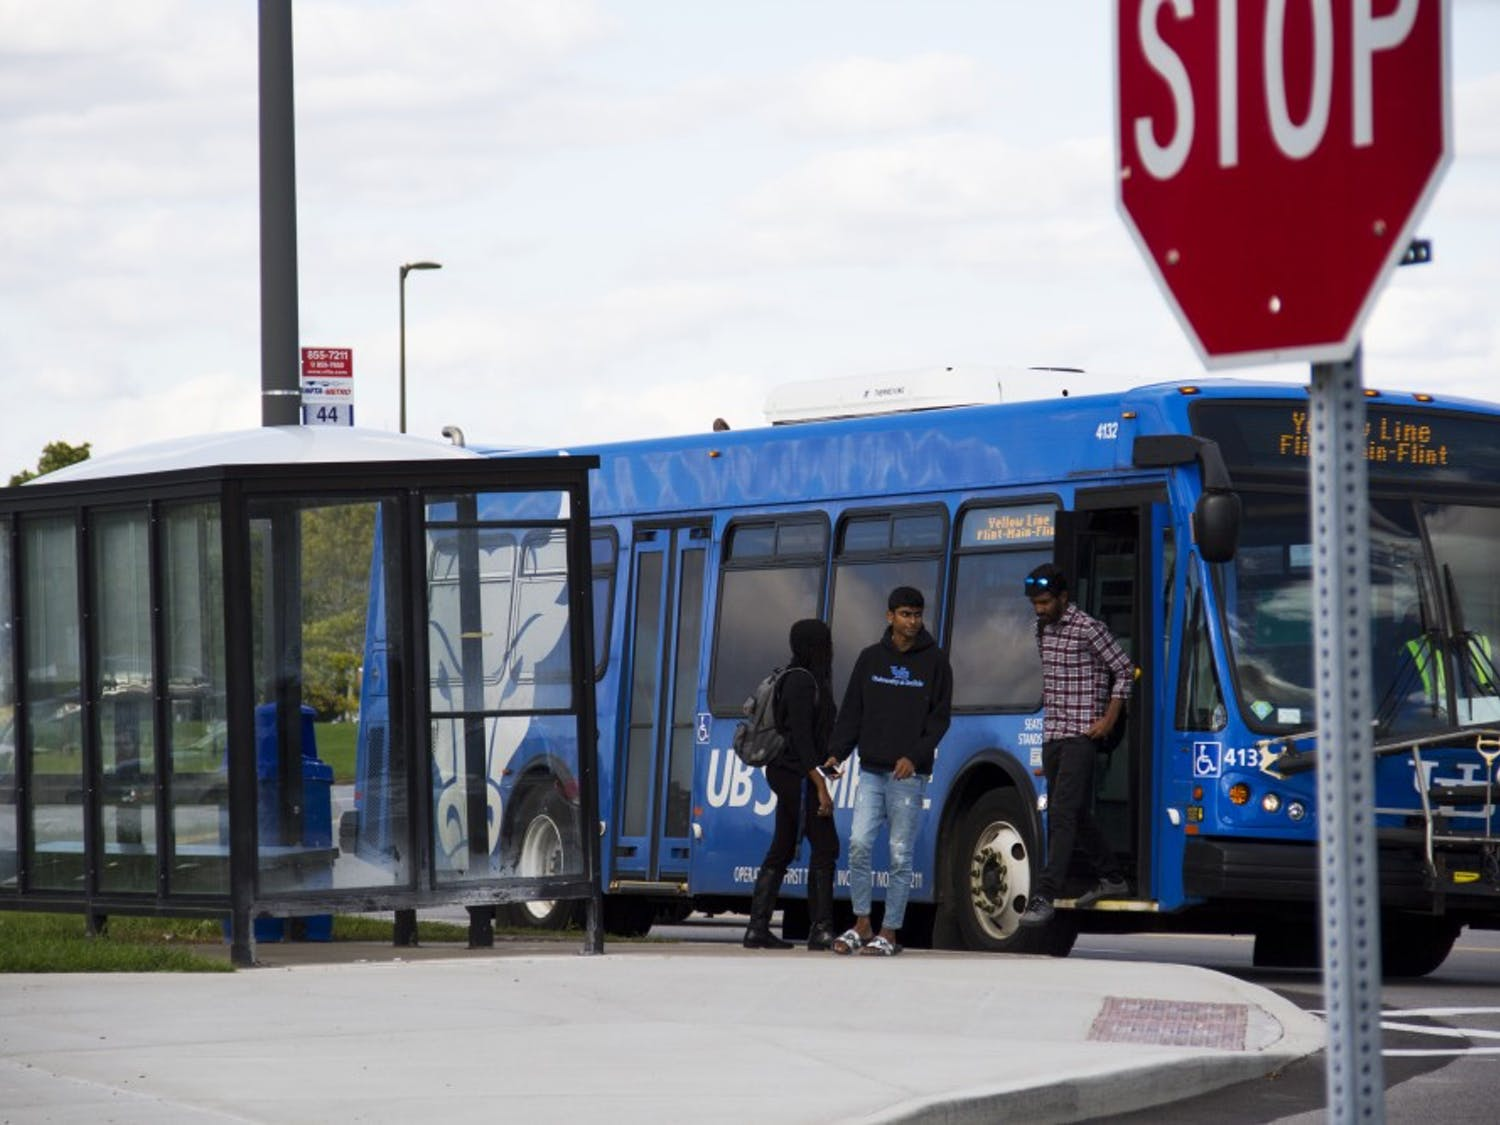 The Center for Tomorrow bus stop, close to restaurants such as Zetti's near North Campus, is just one of the many locations students can get to in order to enhance their UB experience.